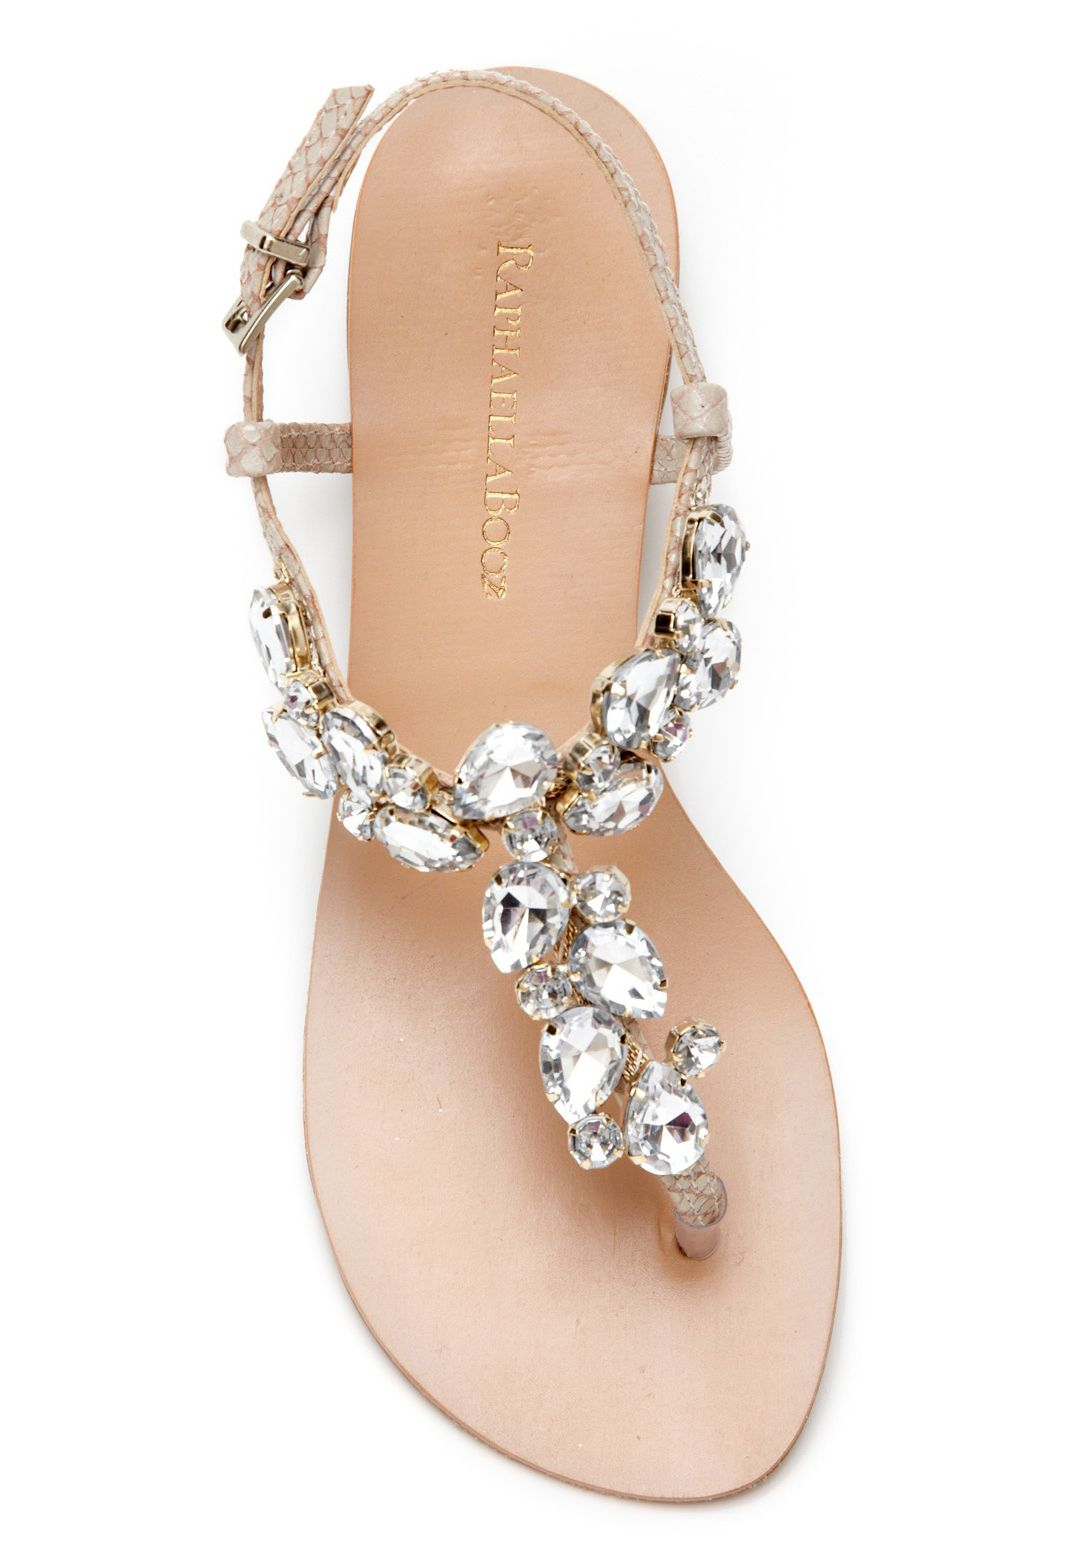 Flat shoe for a bride without heels wedding pinterest for Flat dress sandals for weddings